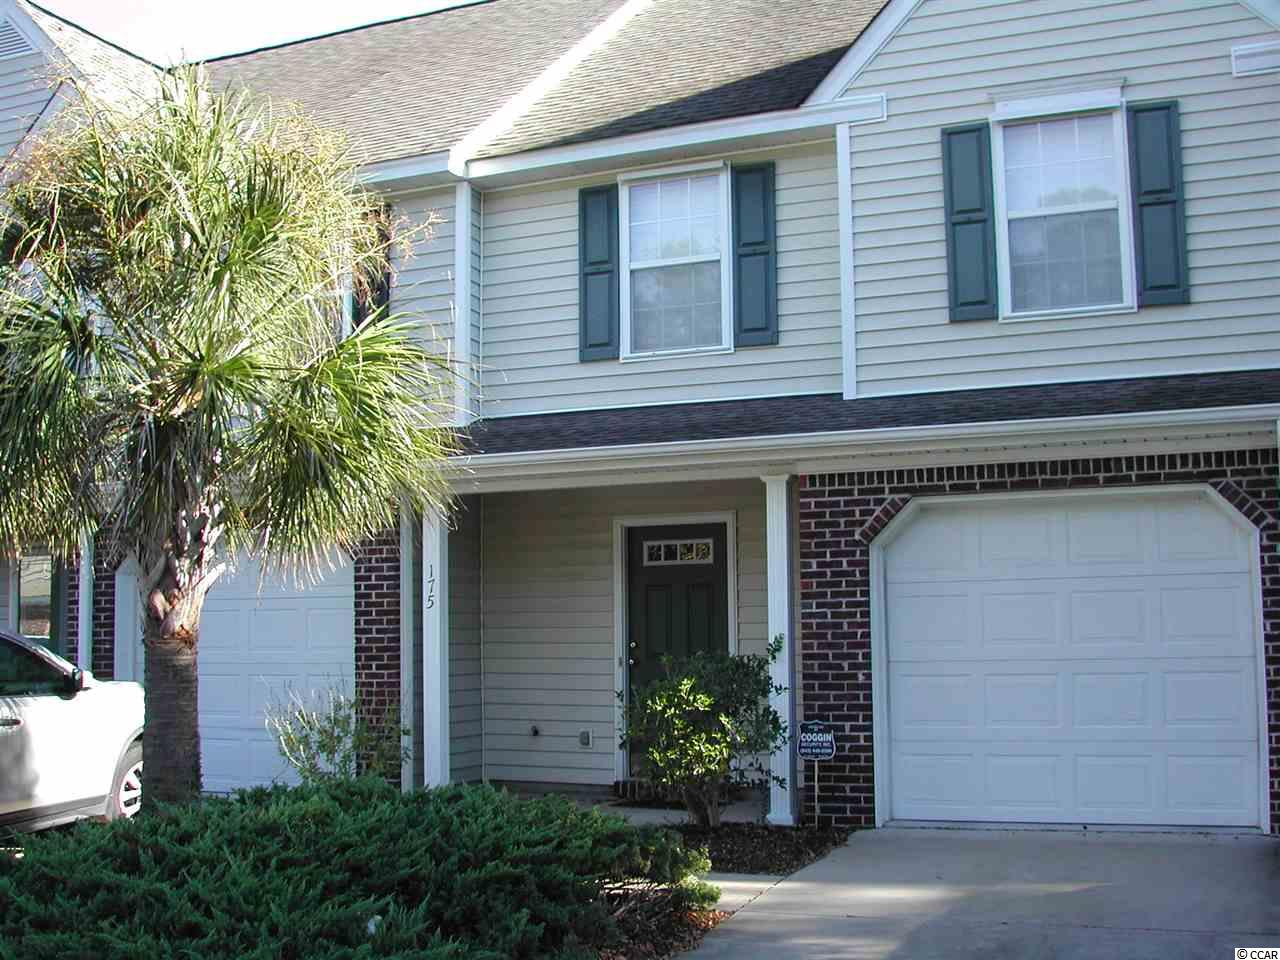 2 bedroom, 2 1/2 bath, on the lake, great location, all appliances, and storm shutters, screened porch, community pool, new hot water heater, HOA takes care of exterior , centrally located, to shops, beach,  dinning, and golf courses,needs a little TLC ( carpet & paint)....priced to sell